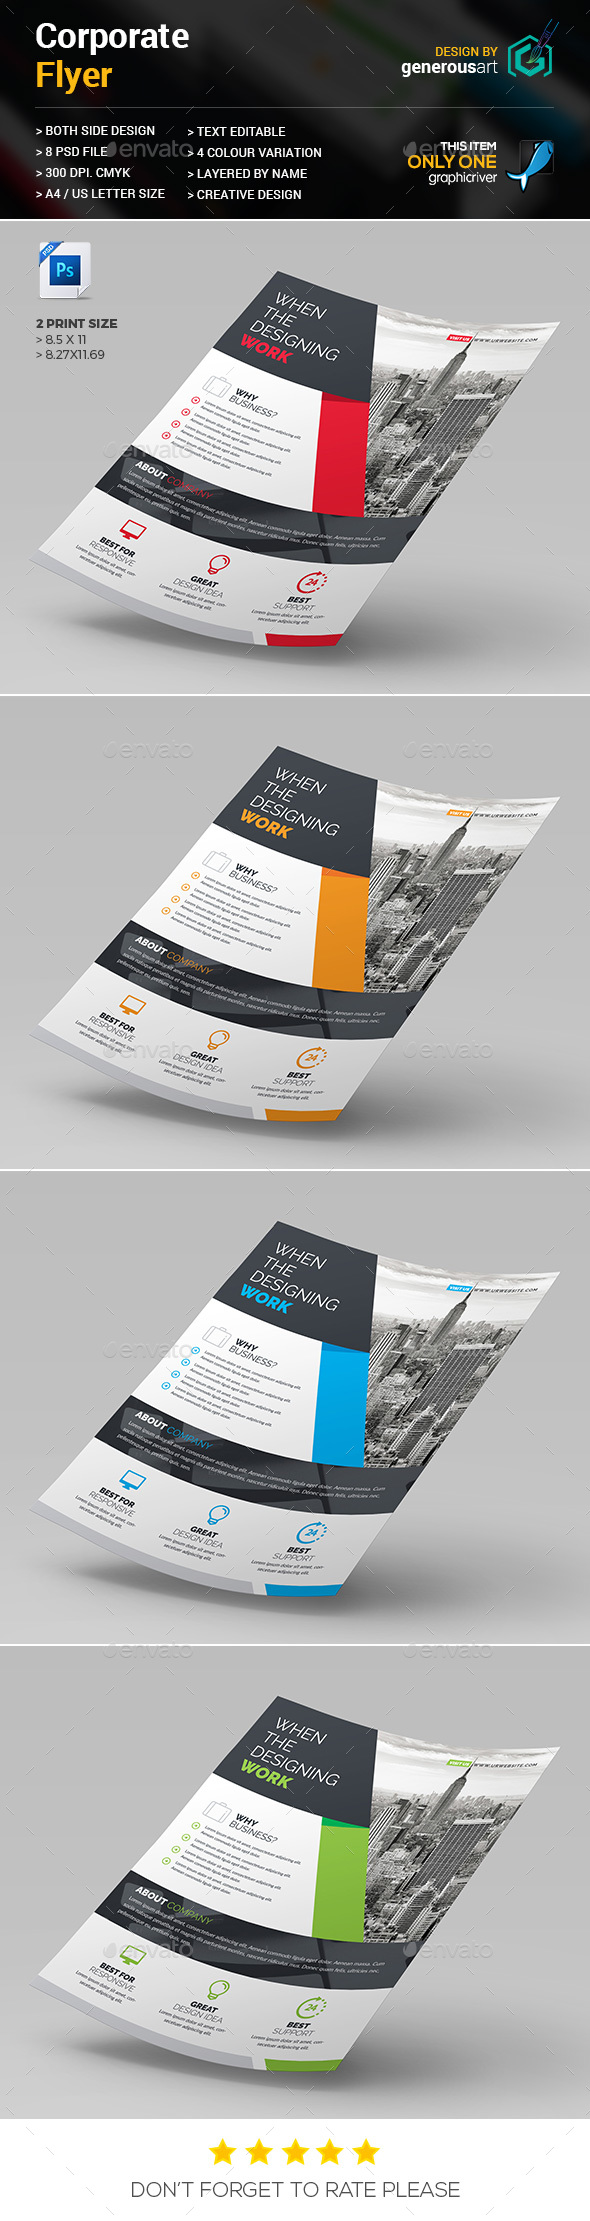 Flyers Design - Corporate Flyers